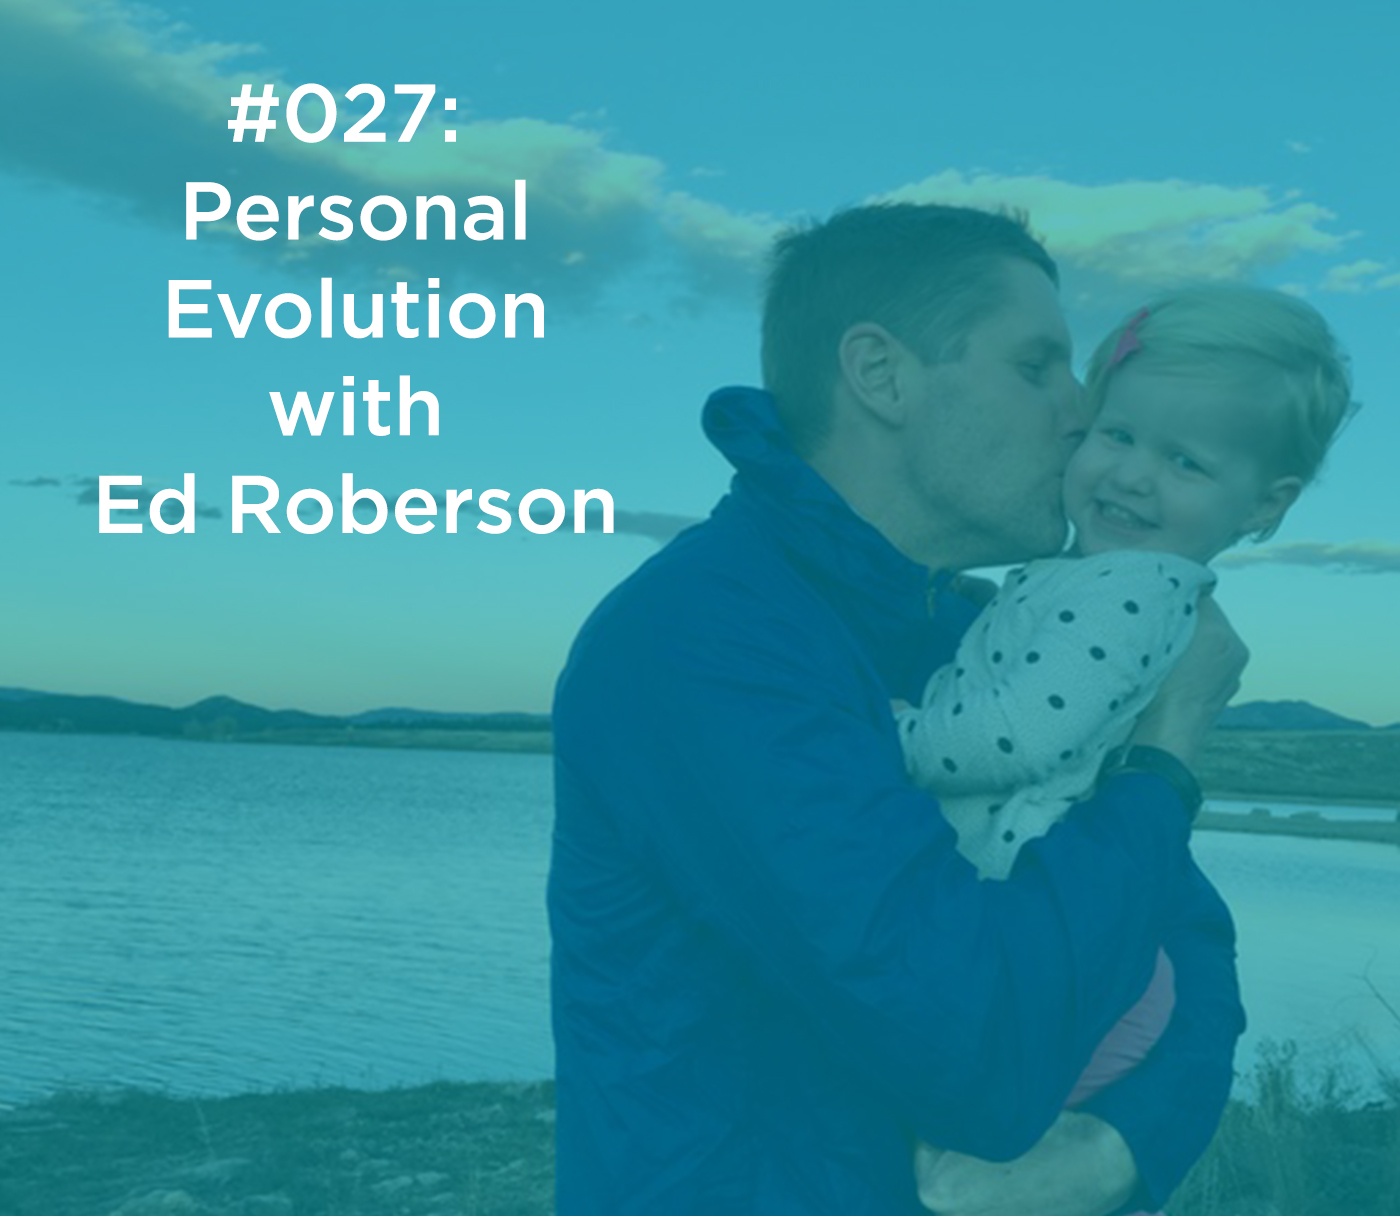 Personal Evolution with Ed Roberson